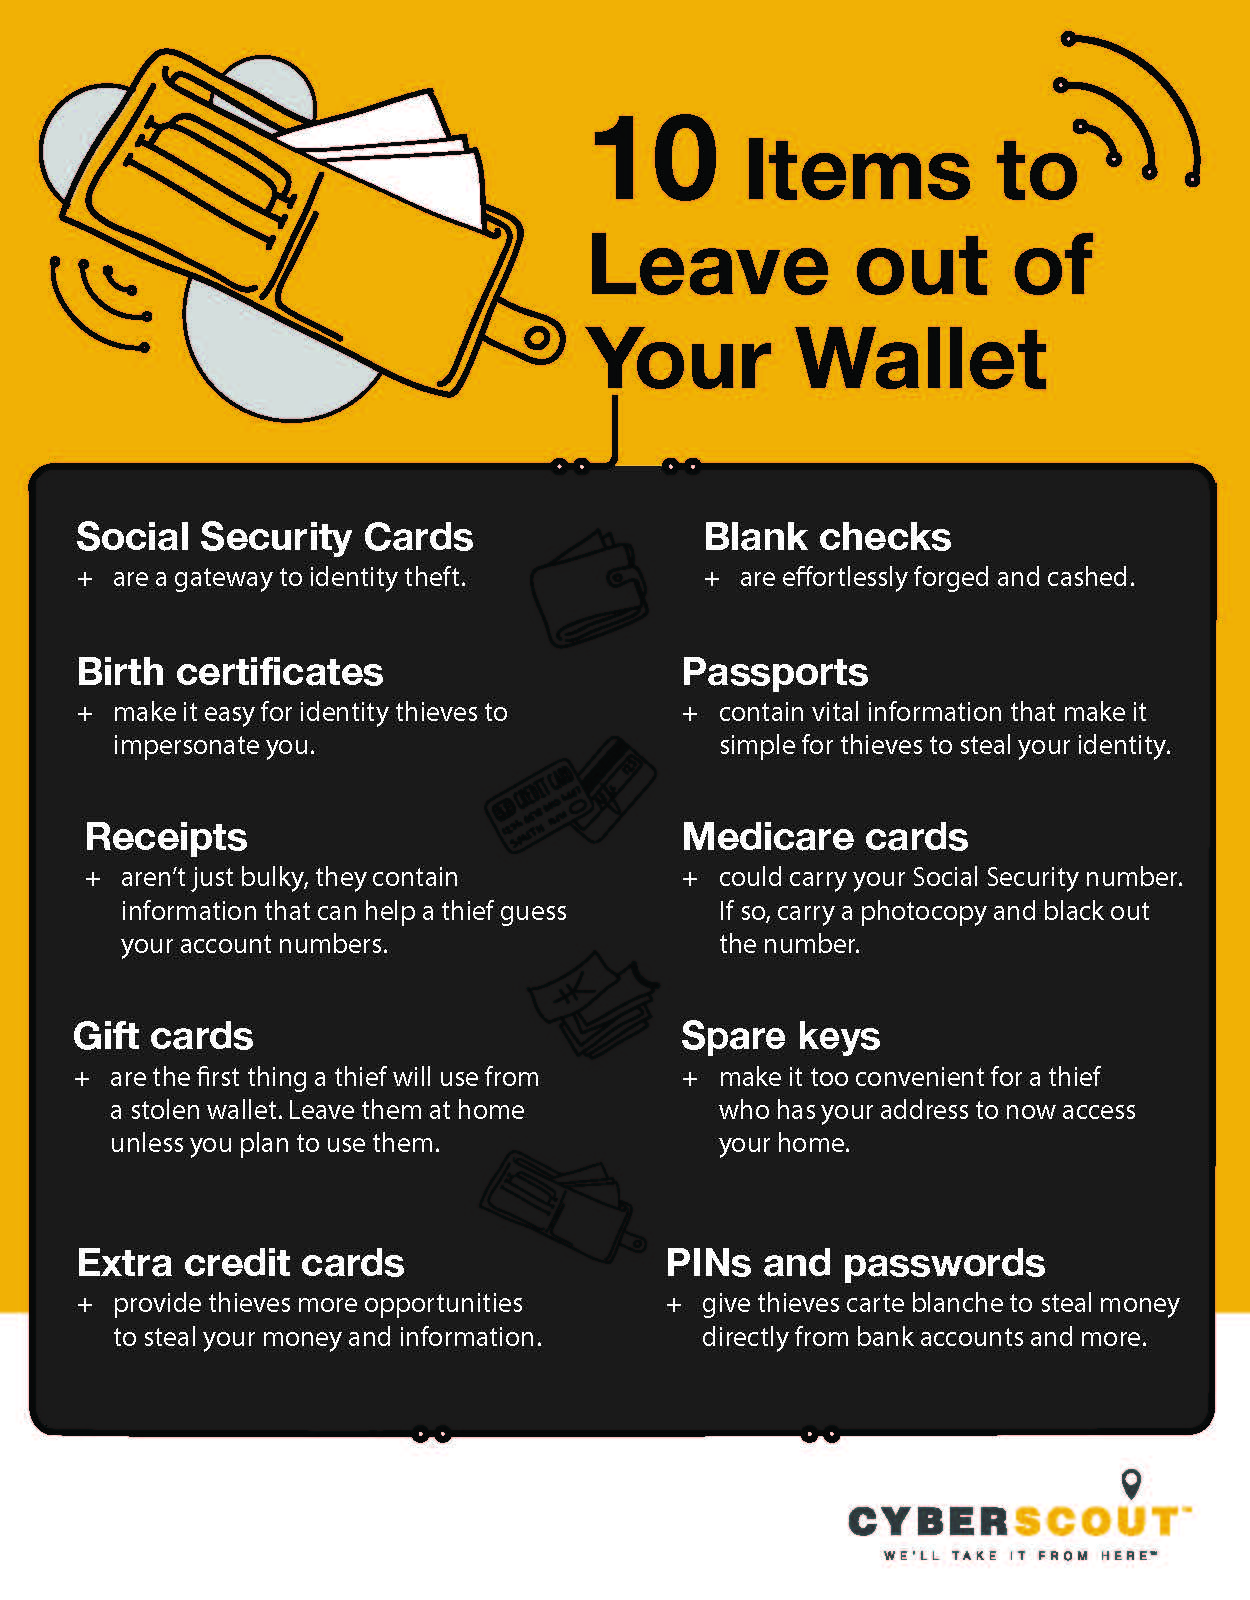 Infographic: 10 items to leave out of your wallet